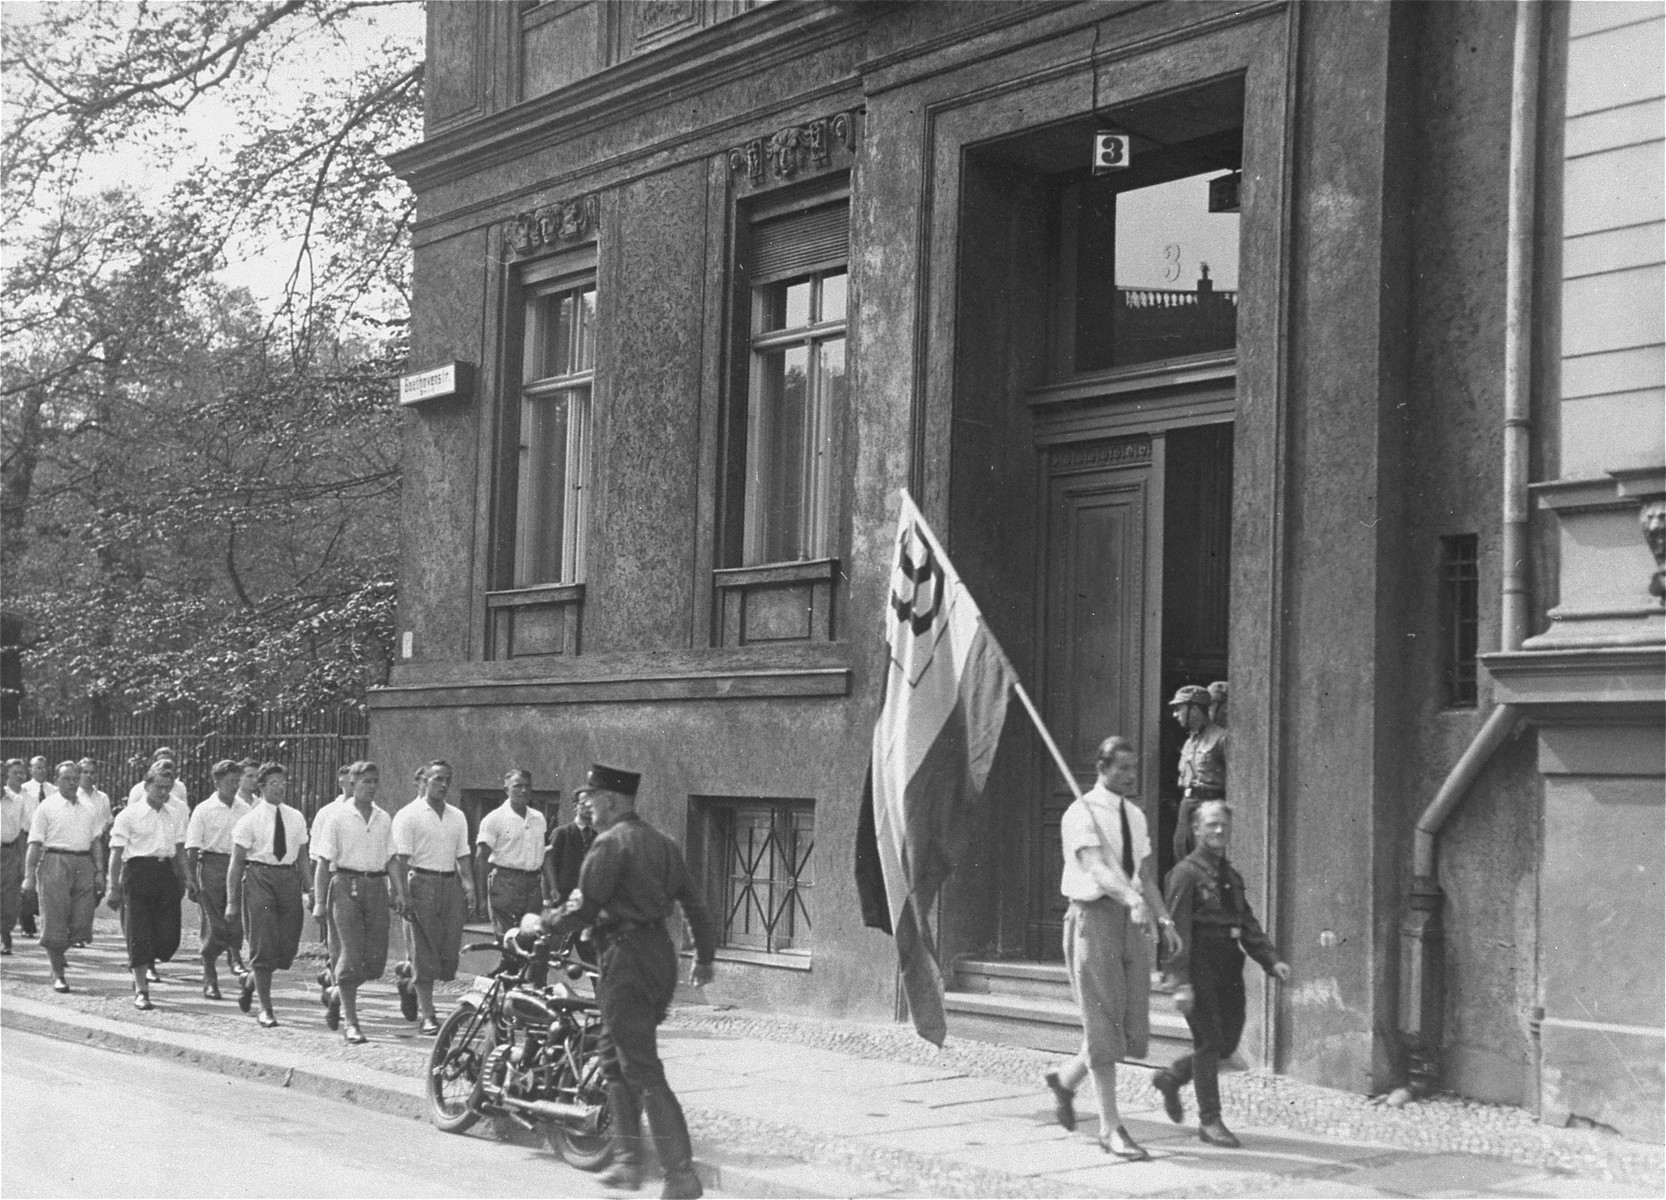 German students parade in front of the Institute for Sexual Research prior to their raid on the building.  The students occupied and pillaged the Institute, then confiscated the Institute's books and periodicals for burning.  The Institute for Sexual Research was established by Dr. Magnus Hirschfeld, a German Jew, as a center for research into sexology.  Members of the institute also provided counseling for homosexuals and transsexuals and fought for the expansion of their political and social rights.